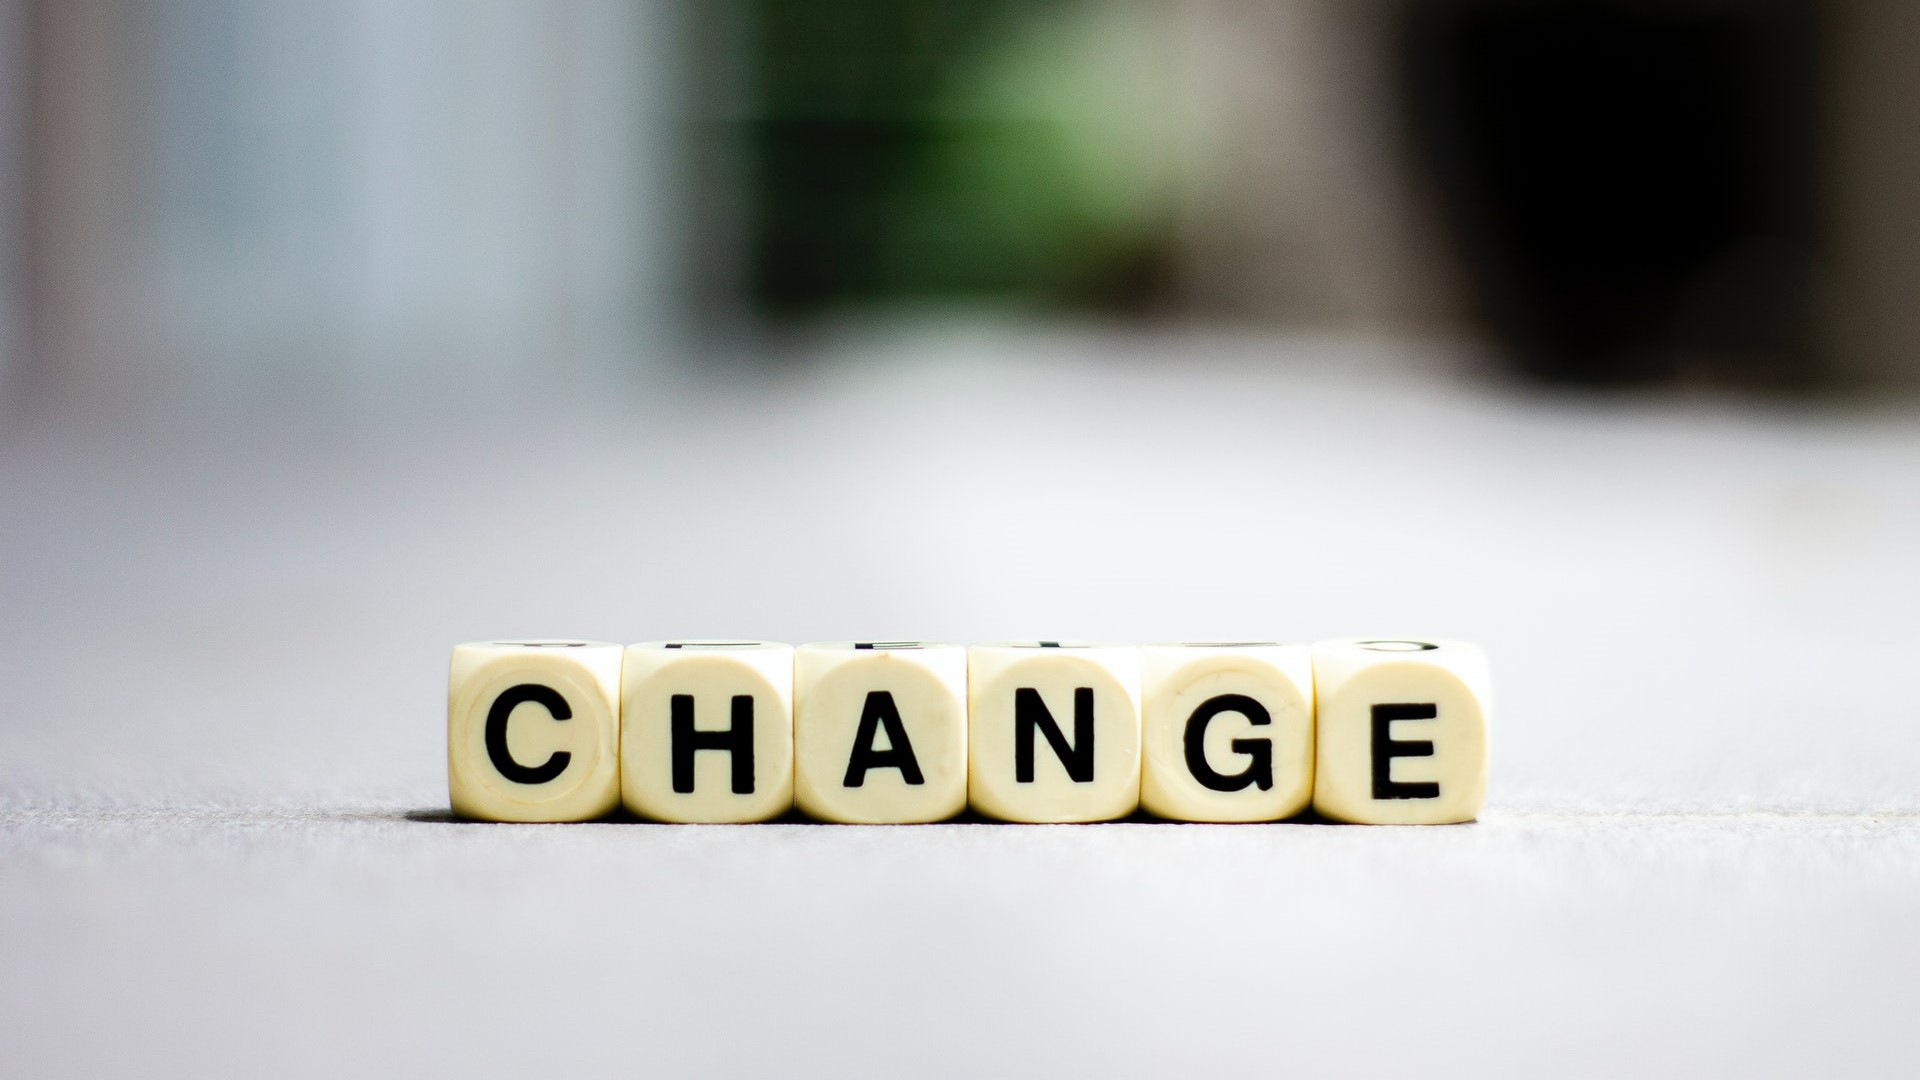 Six Areas to Focus on for Your Change Effort